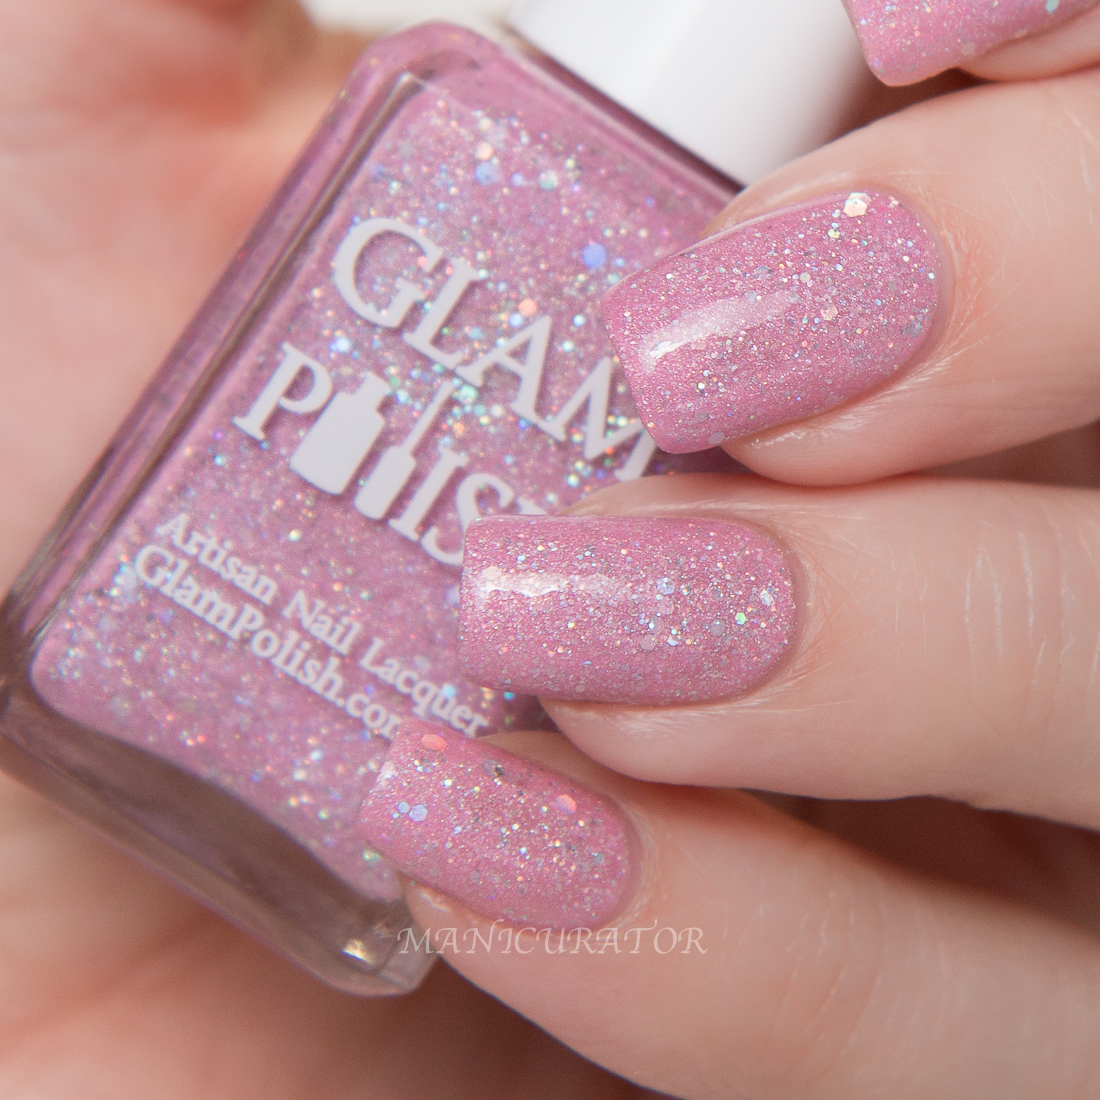 Glam-Cast-a-Spell-Enchanted